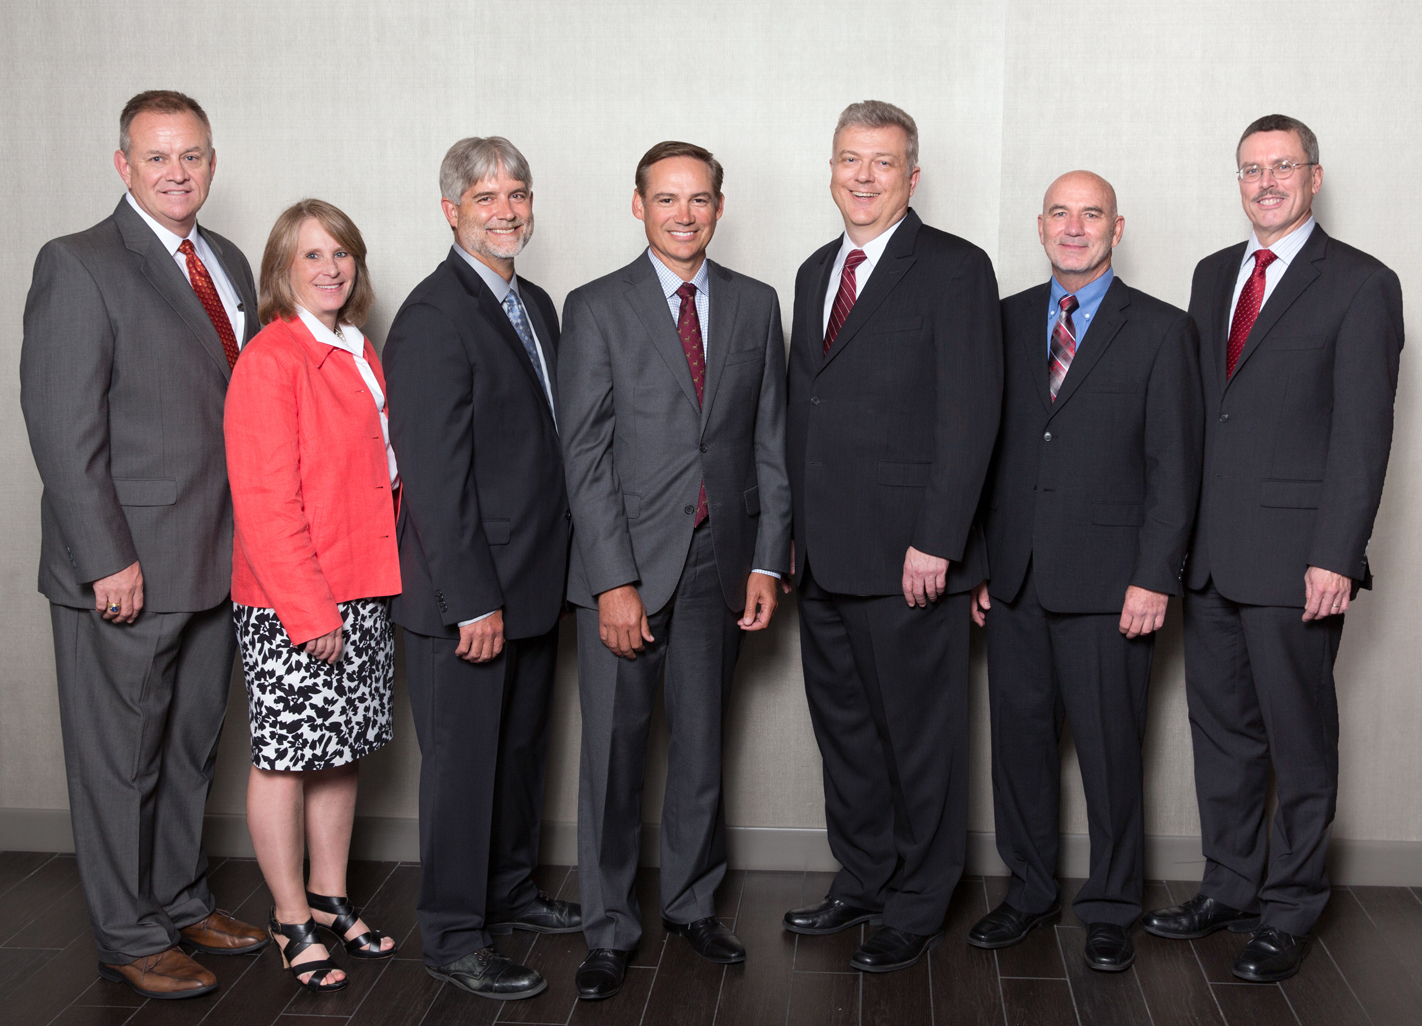 Rockwell Collins Announces 2016 Class of Fellows | Business Wire